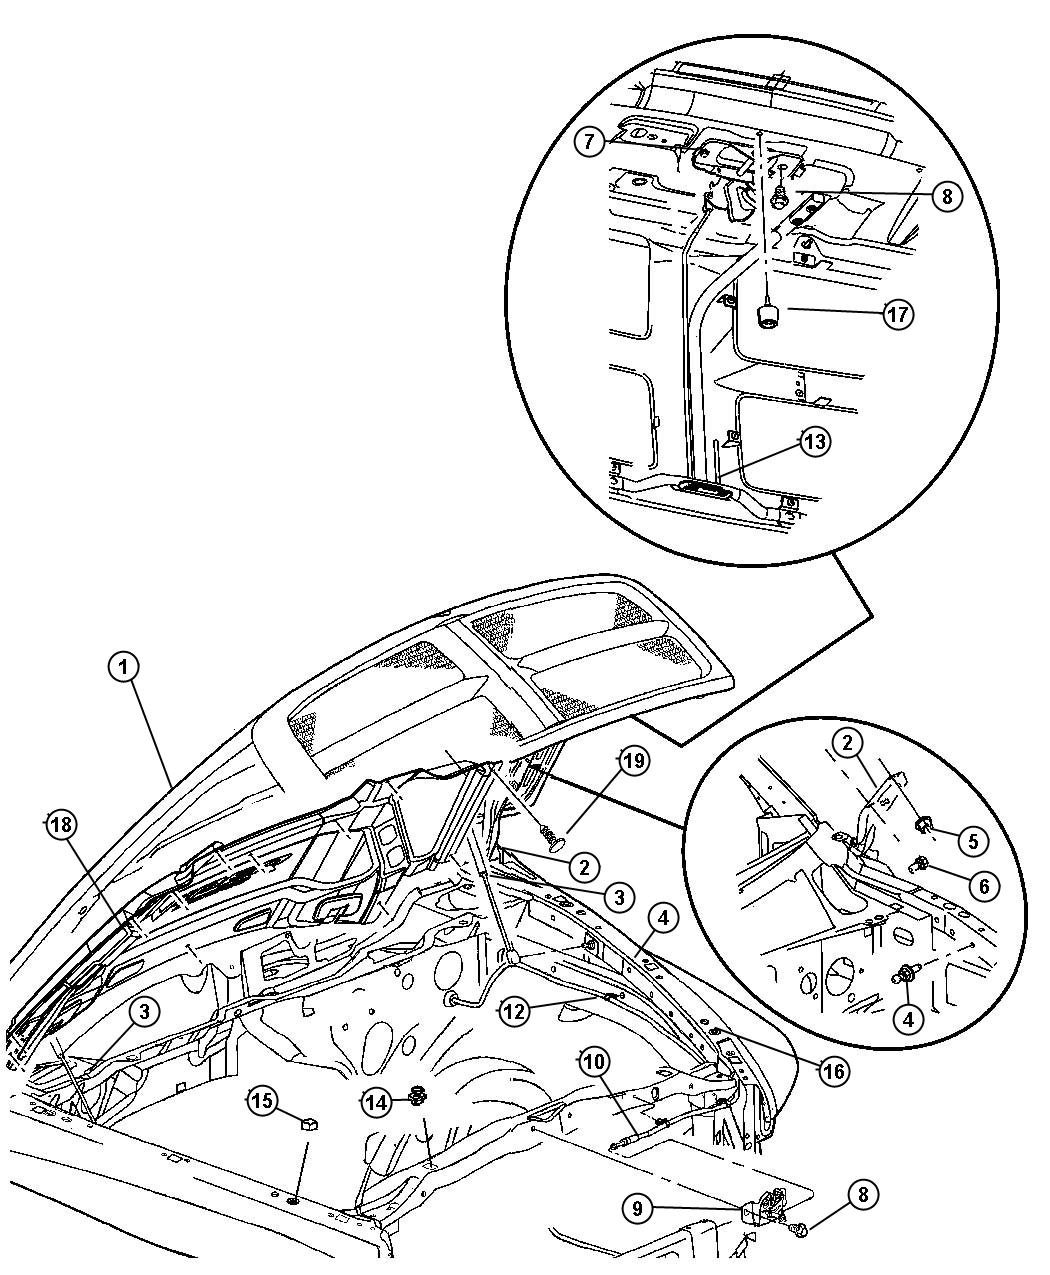 98 dodge neon fuse box location  dodge  auto fuse box diagram